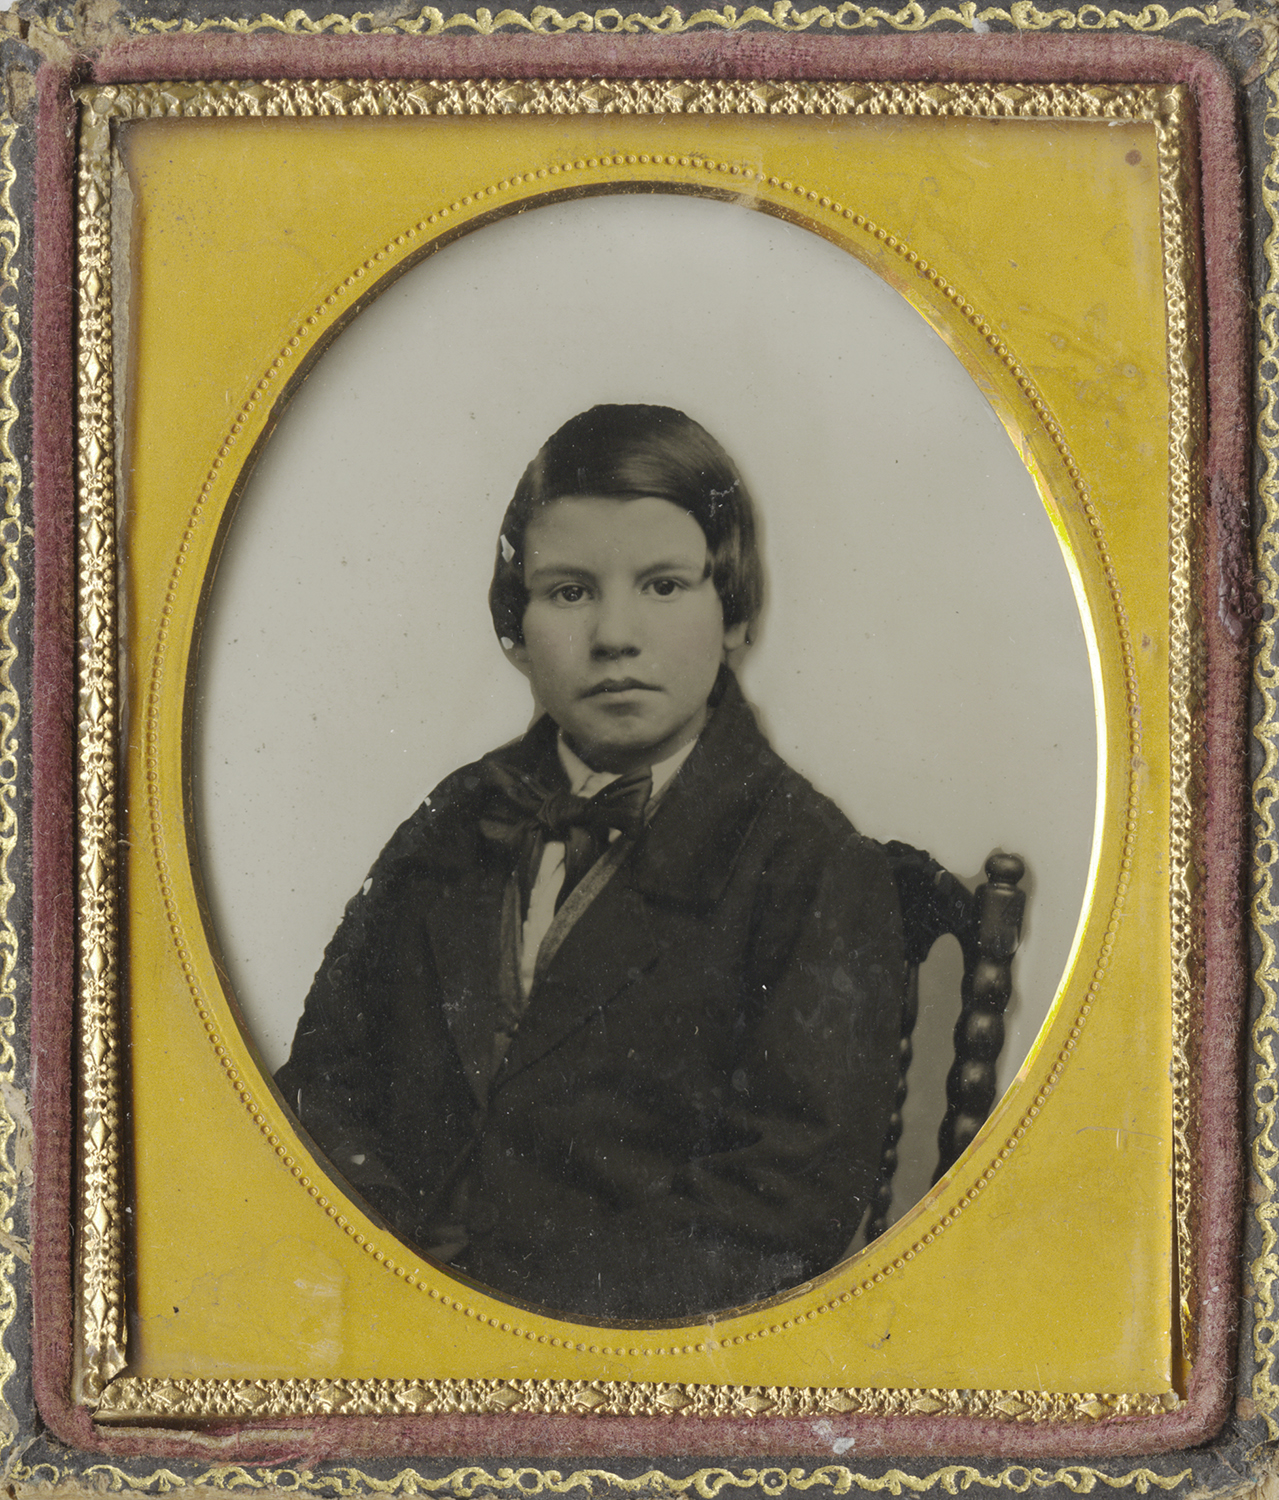 Portrait of Young Boy in Satin Bowtie